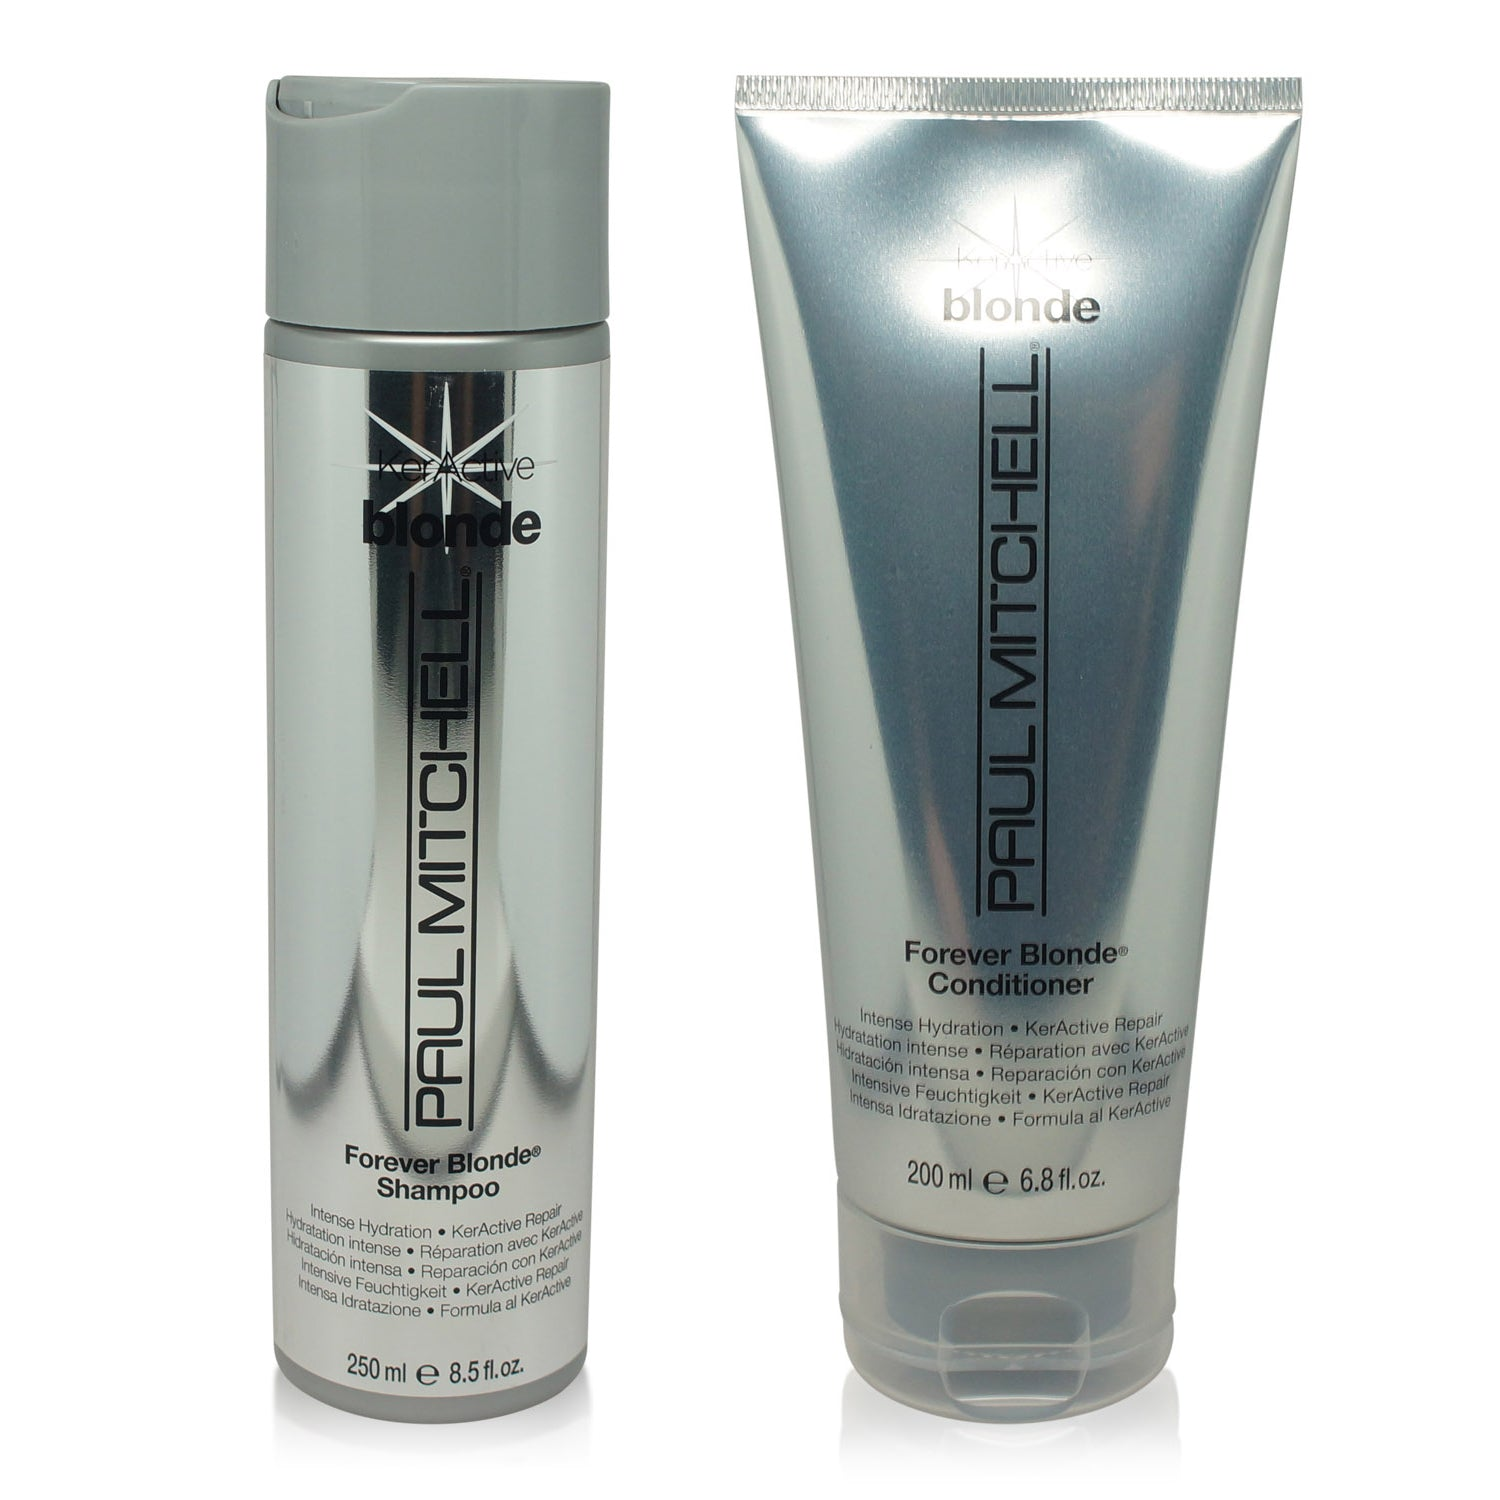 PAUL MITCHELL ~ BLONDE ~ FOREVER BLONDE SHAMPOO 8.5 OZ + FOREVER BLONDE CONDITIONER 6.8 OZ ~  COMBO PACK